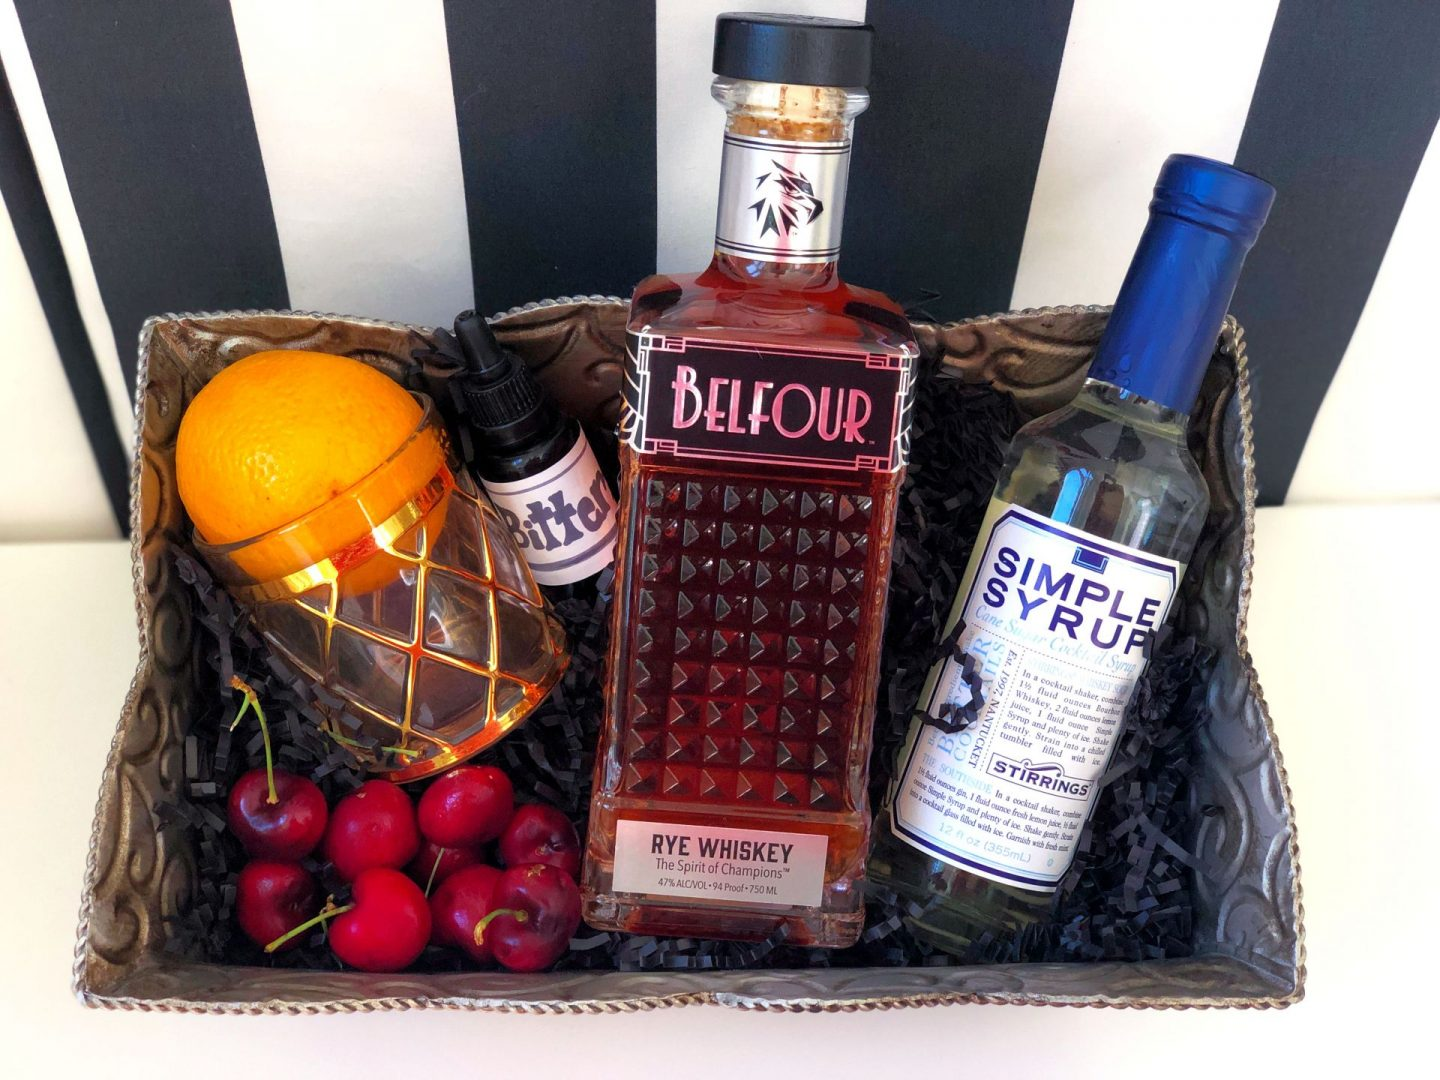 DIY Old Fashioned Kit featuring Belfour Whiskey